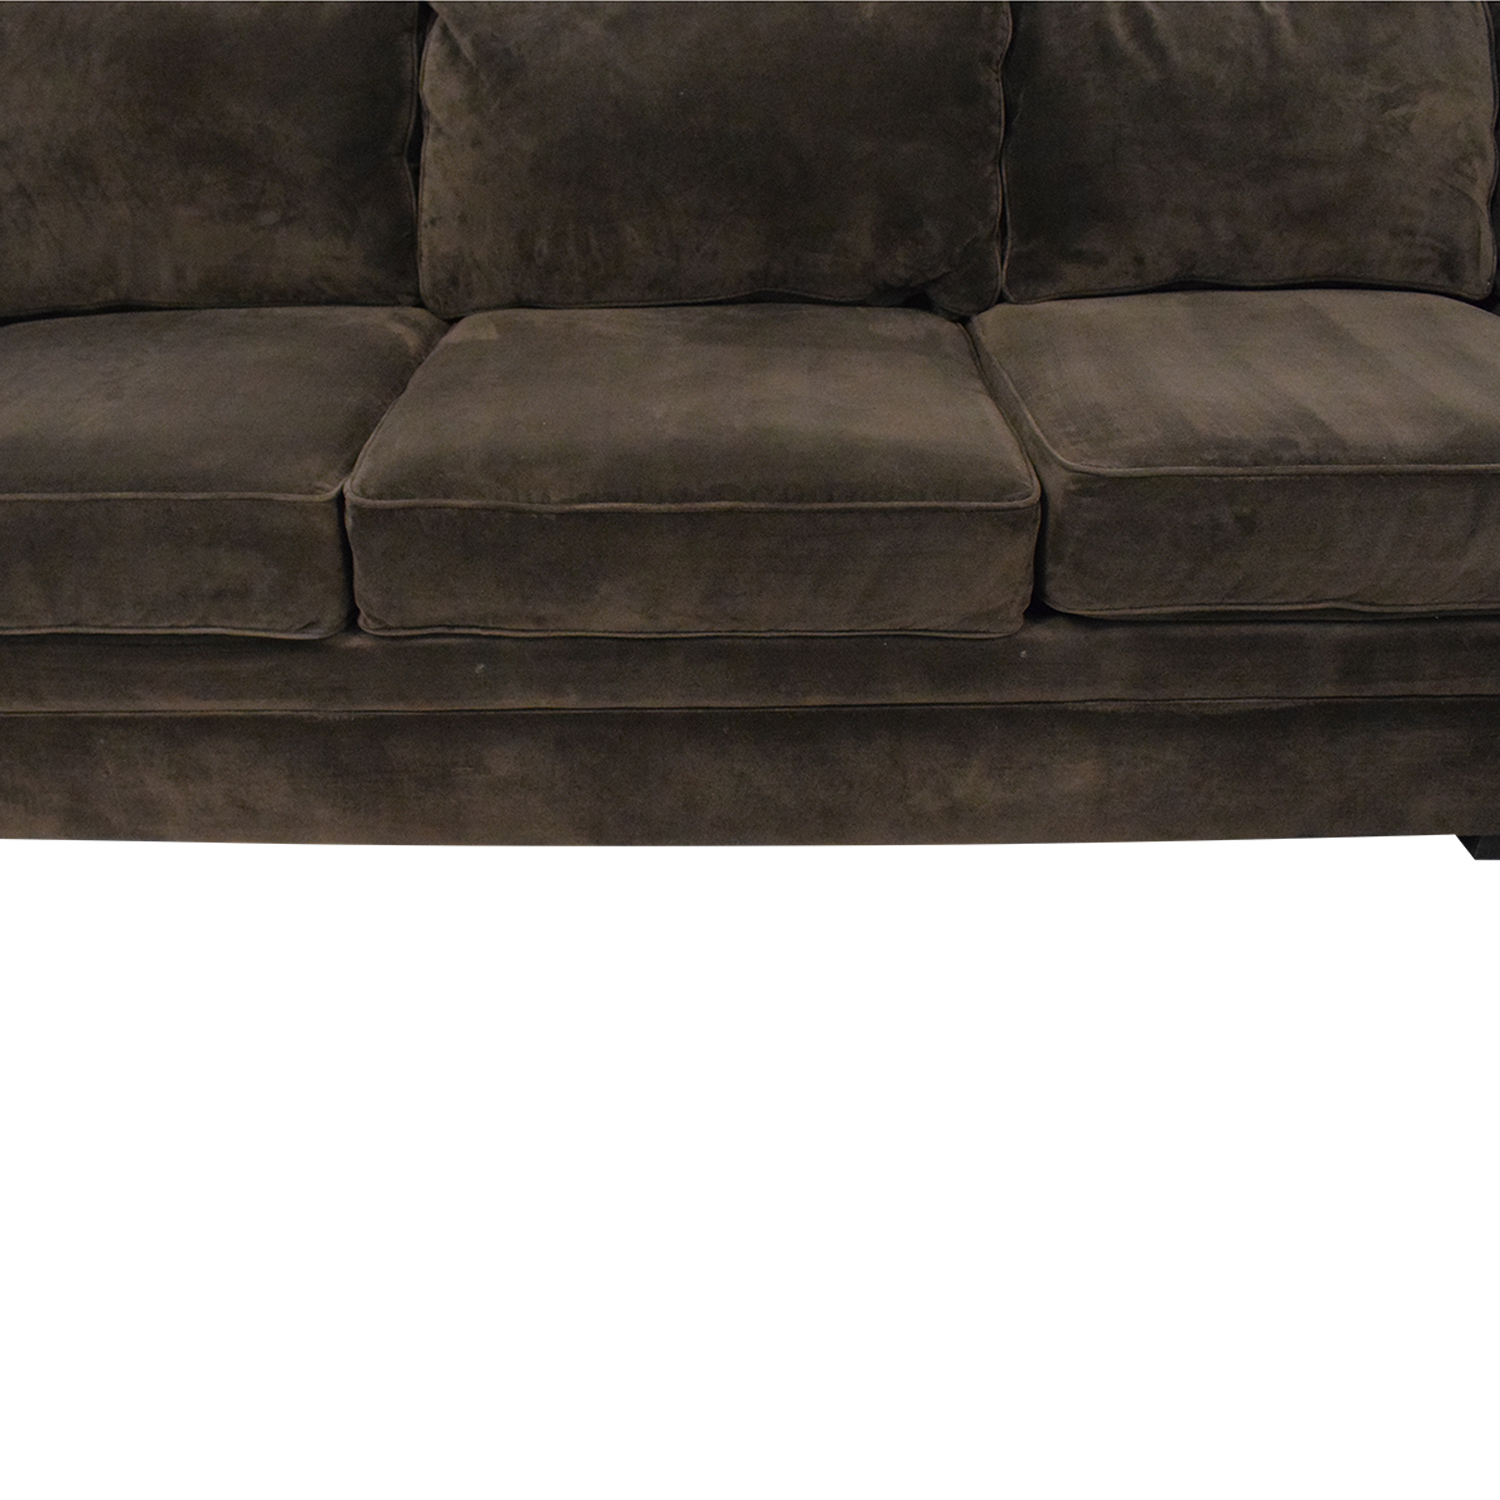 Star Furniture Star Furniture Juno Raf Sectional Sofa with Chaise used